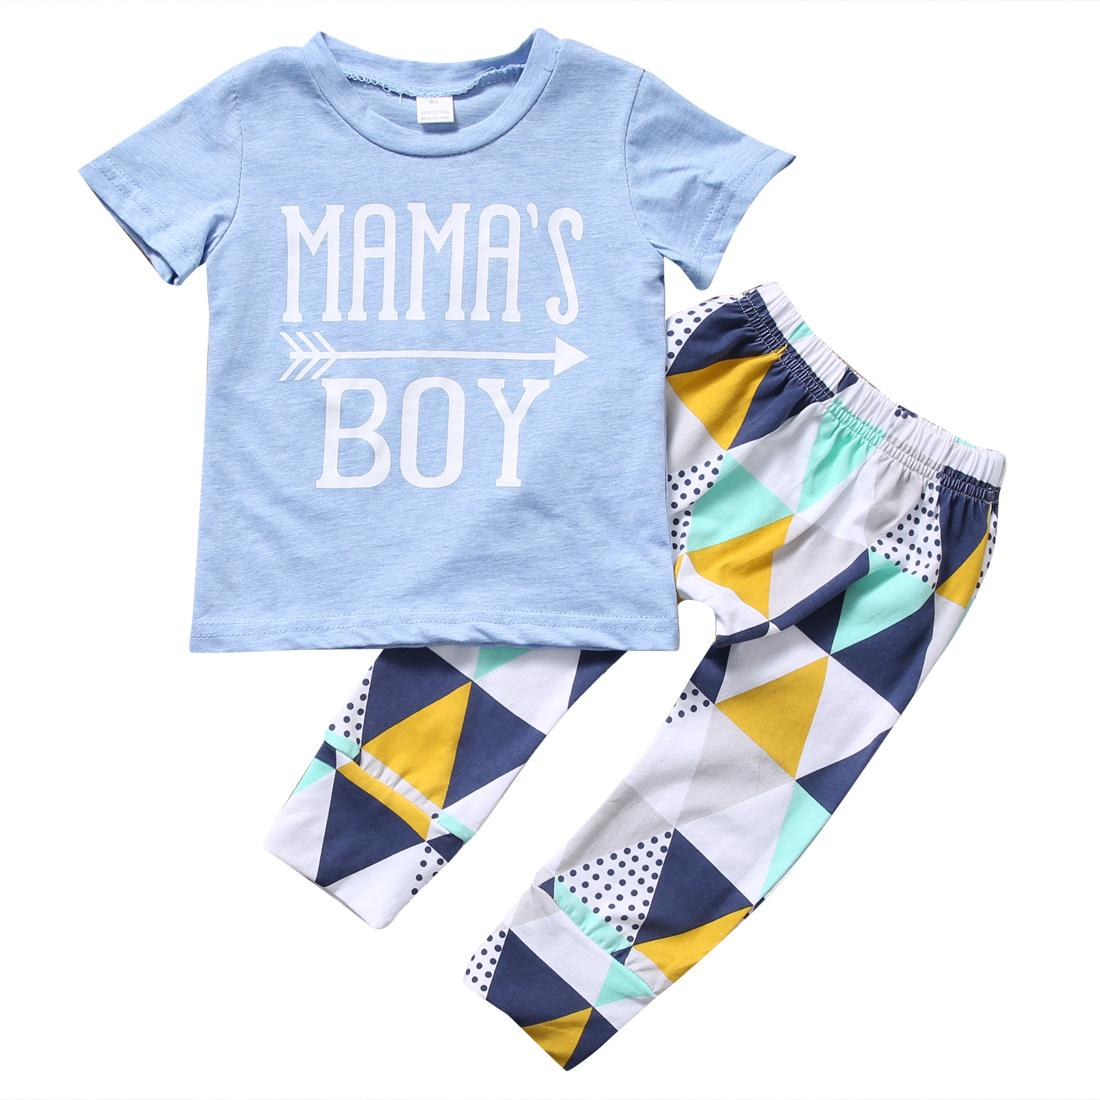 ce30979a7fb71 Summer 2018 Newborn Baby Boy Clothes Short Sleeve Cotton T-shirt Tops  Geometric Pant 2PCS Outfit Toddler Kids Clothing Set